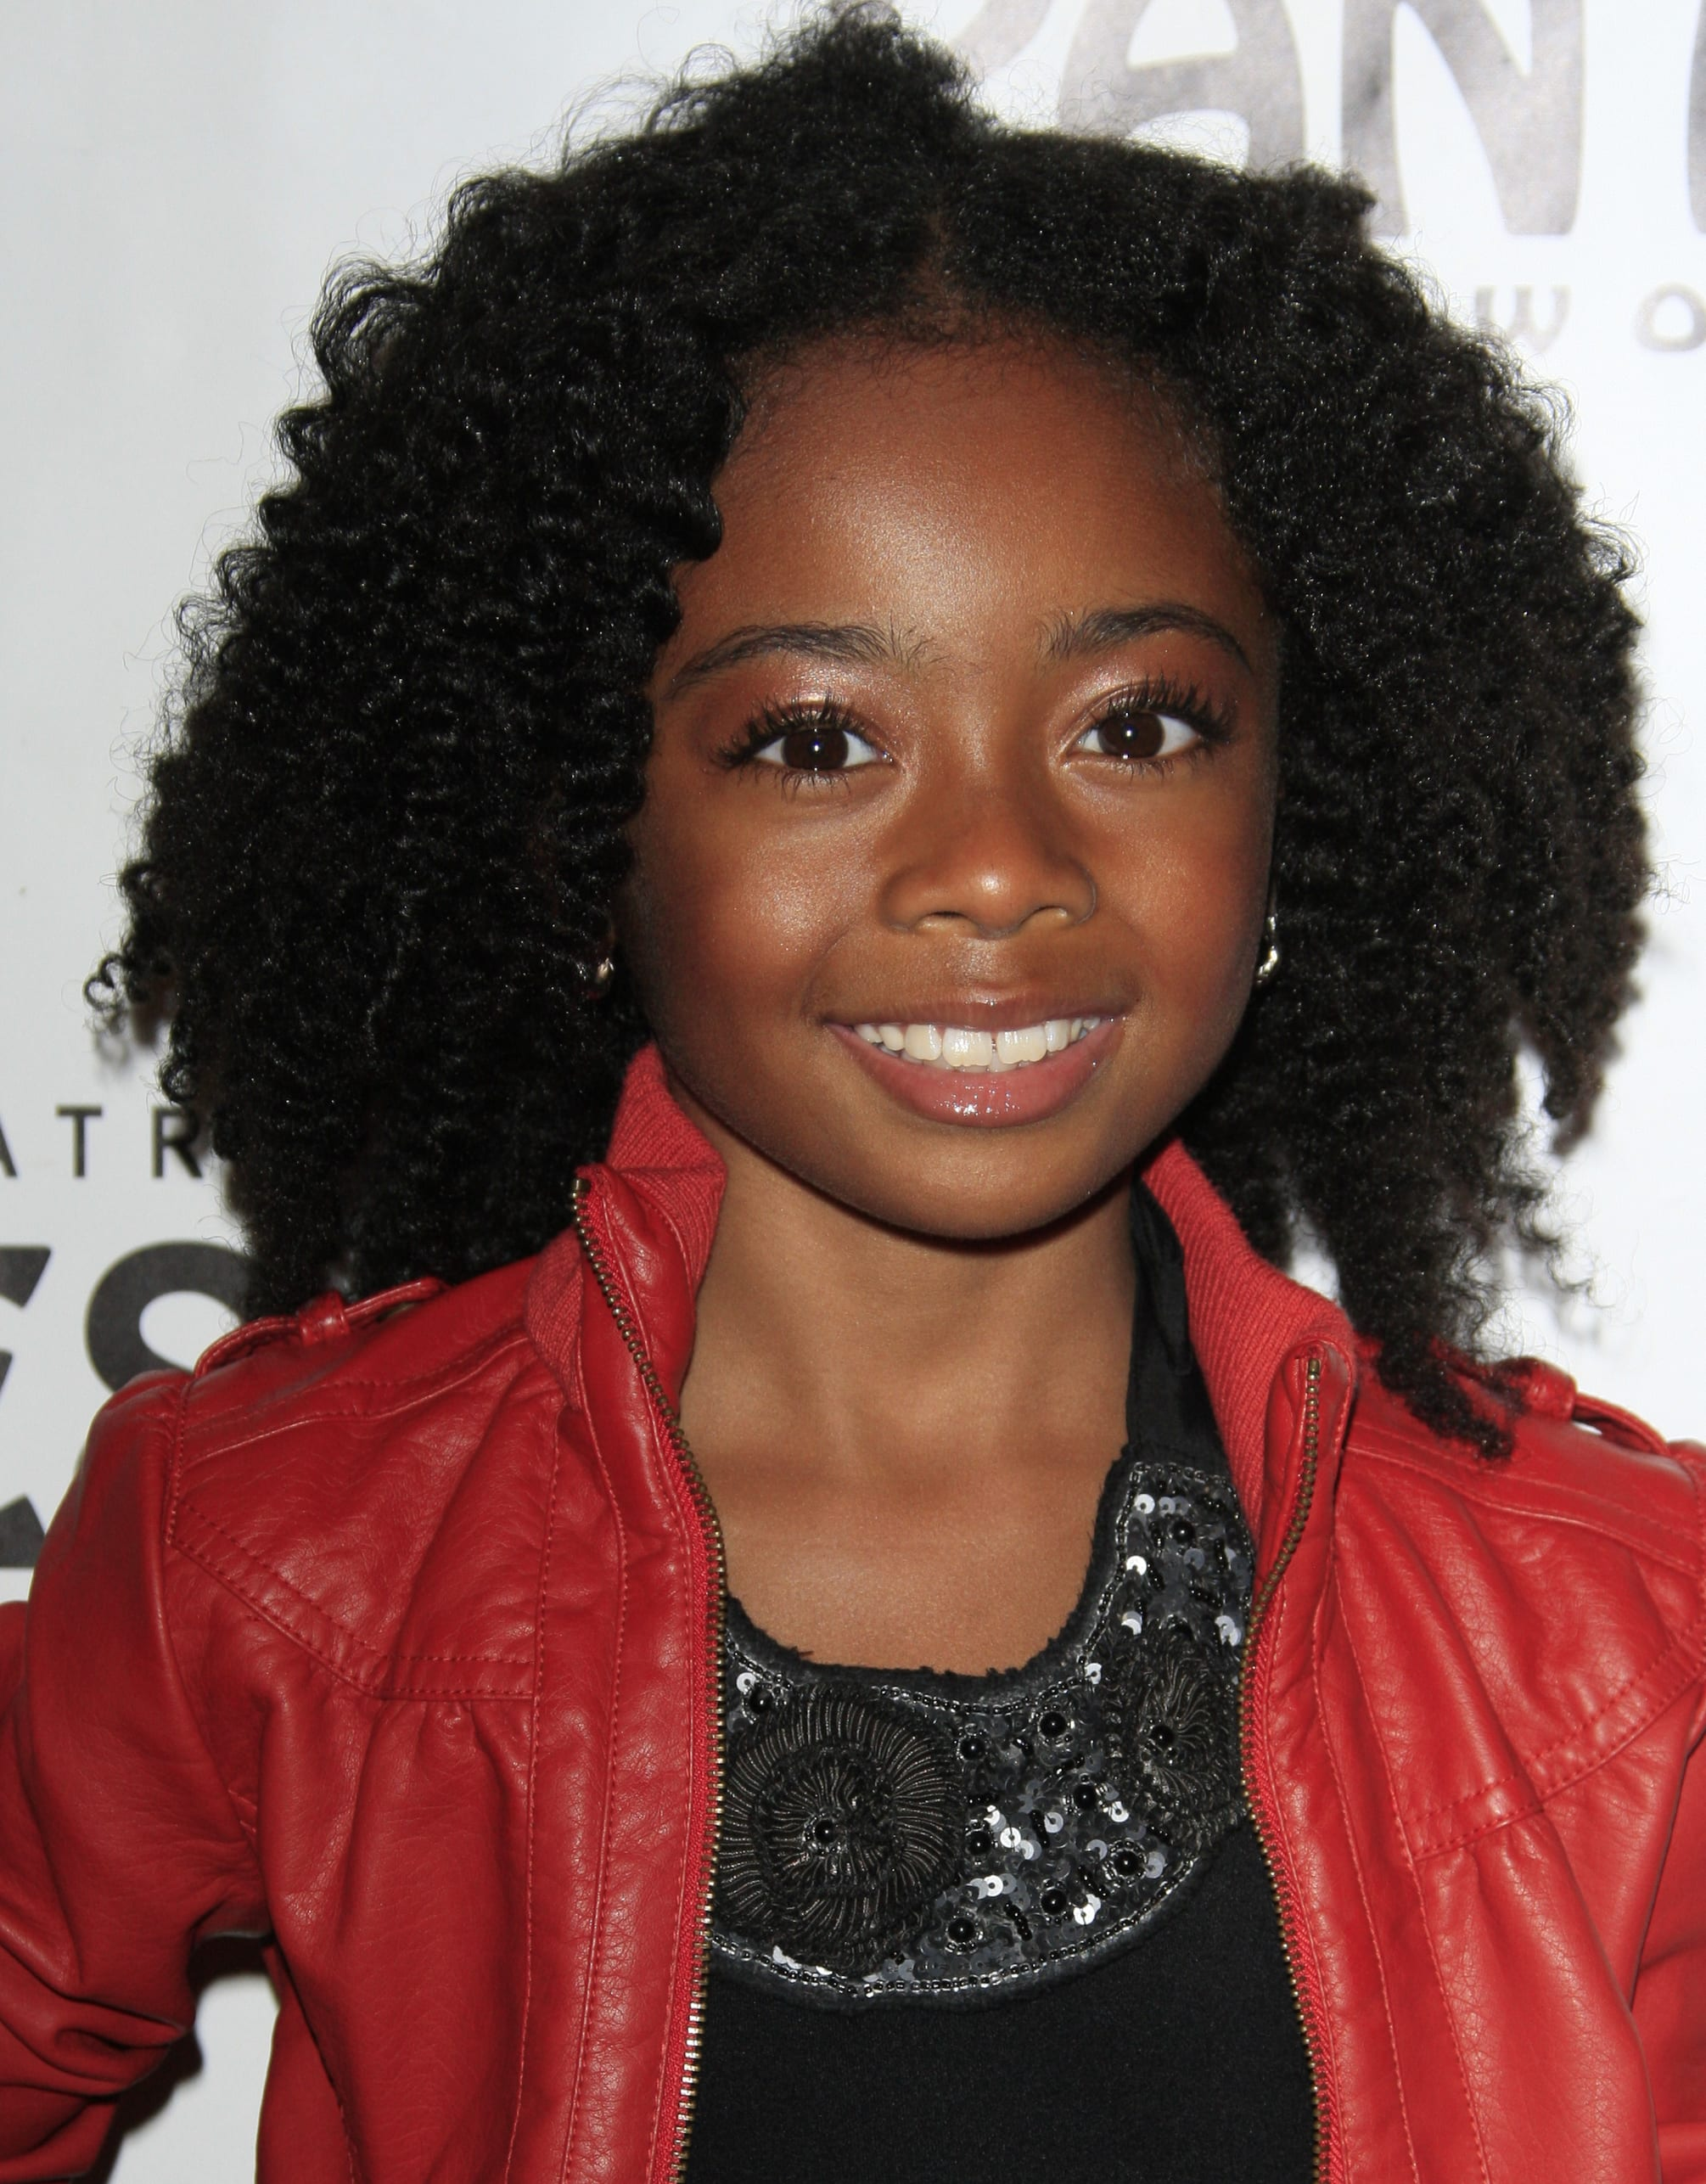 Skai Jackson's Natural Curls and Middle Part